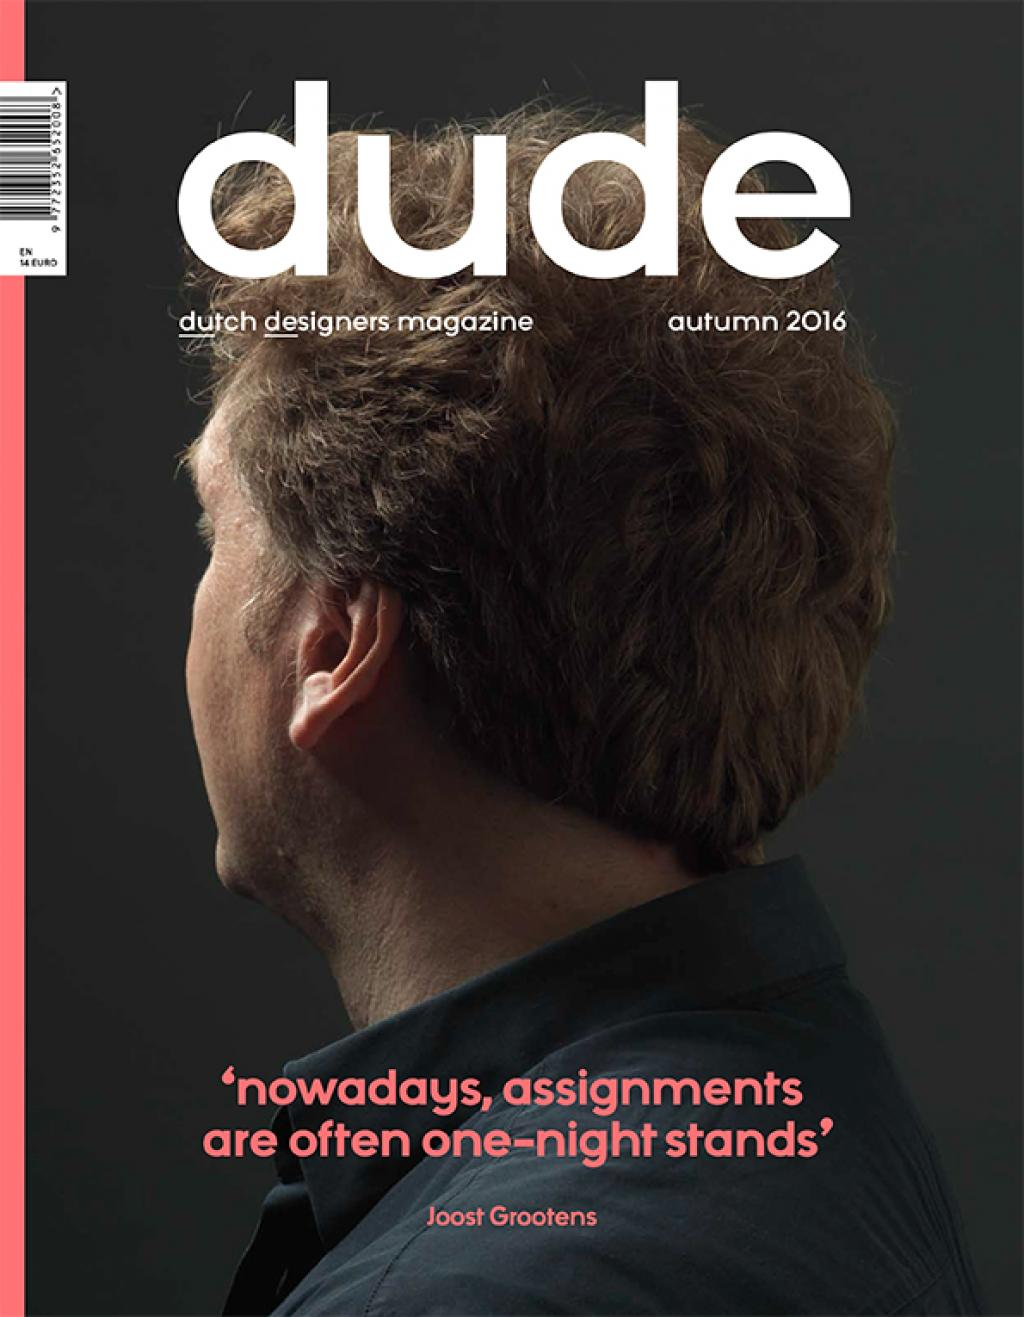 The new Dude, Dutch Designers Magazine on Dutch graphic and book design. See bno.nl/dude.